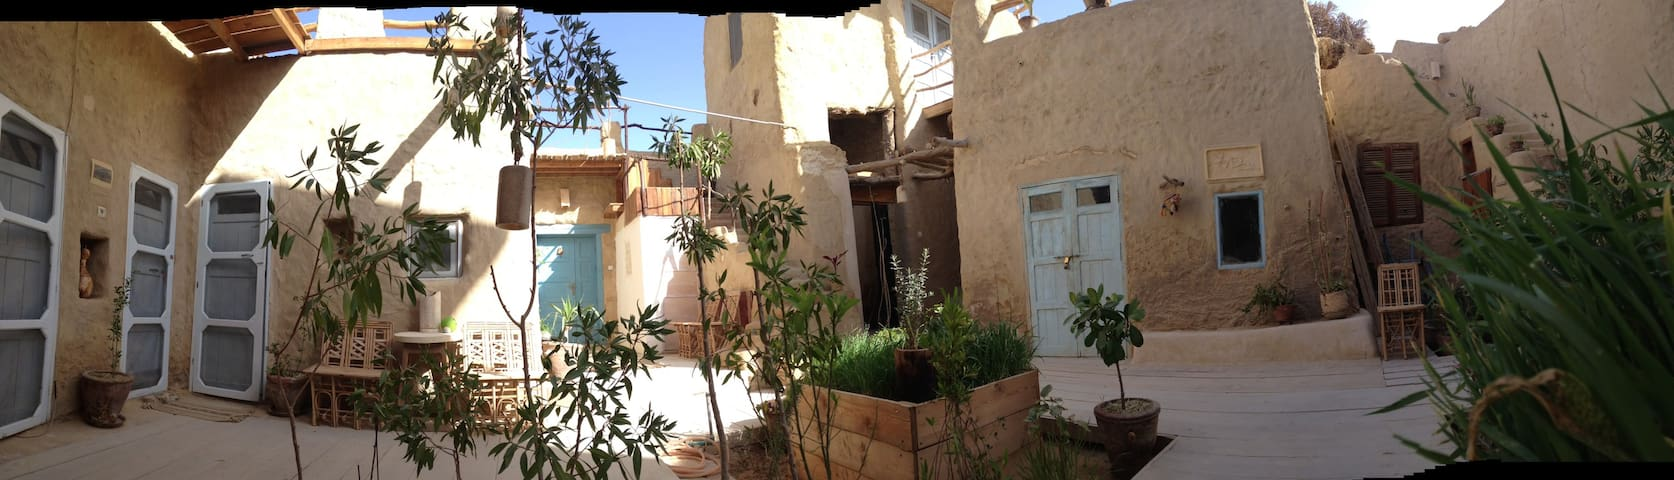 Traditional Siwan Eco House in Siwa town - Siwa Oasis - Dom